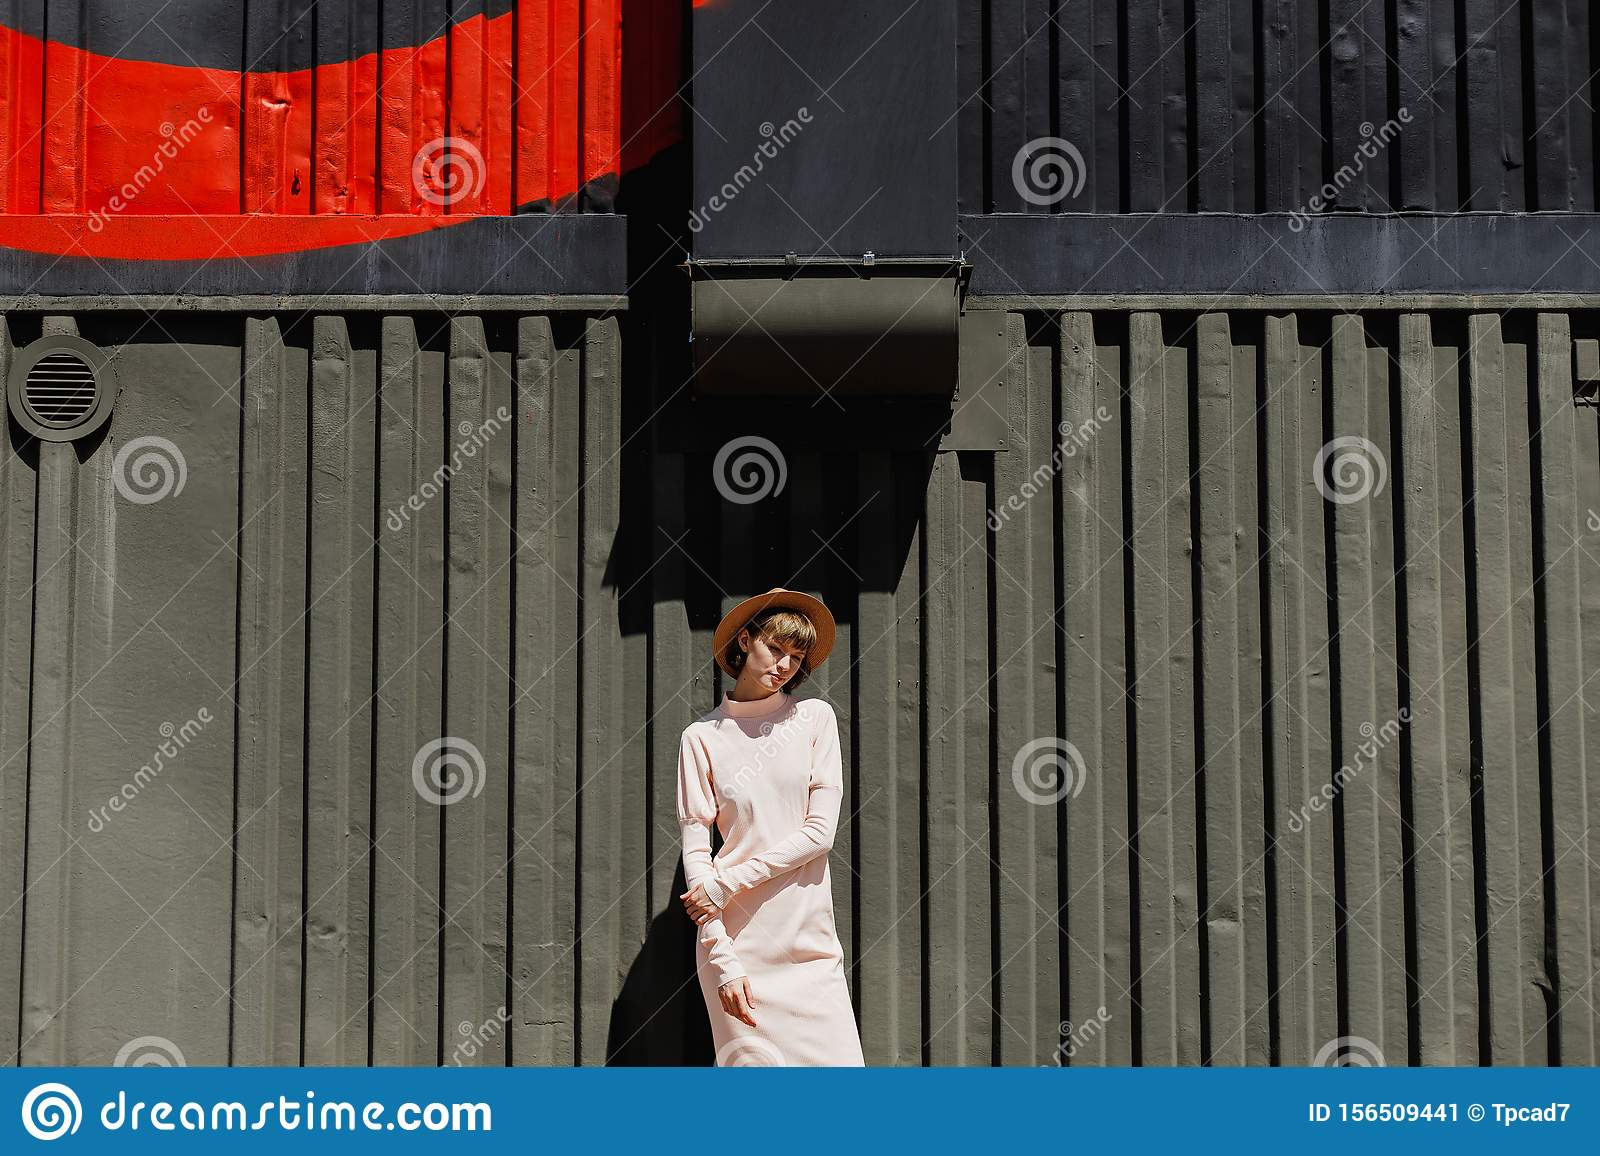 Stylish girl in a gently pink dress and straw hat standing next to a dark metal fence on a sunny day